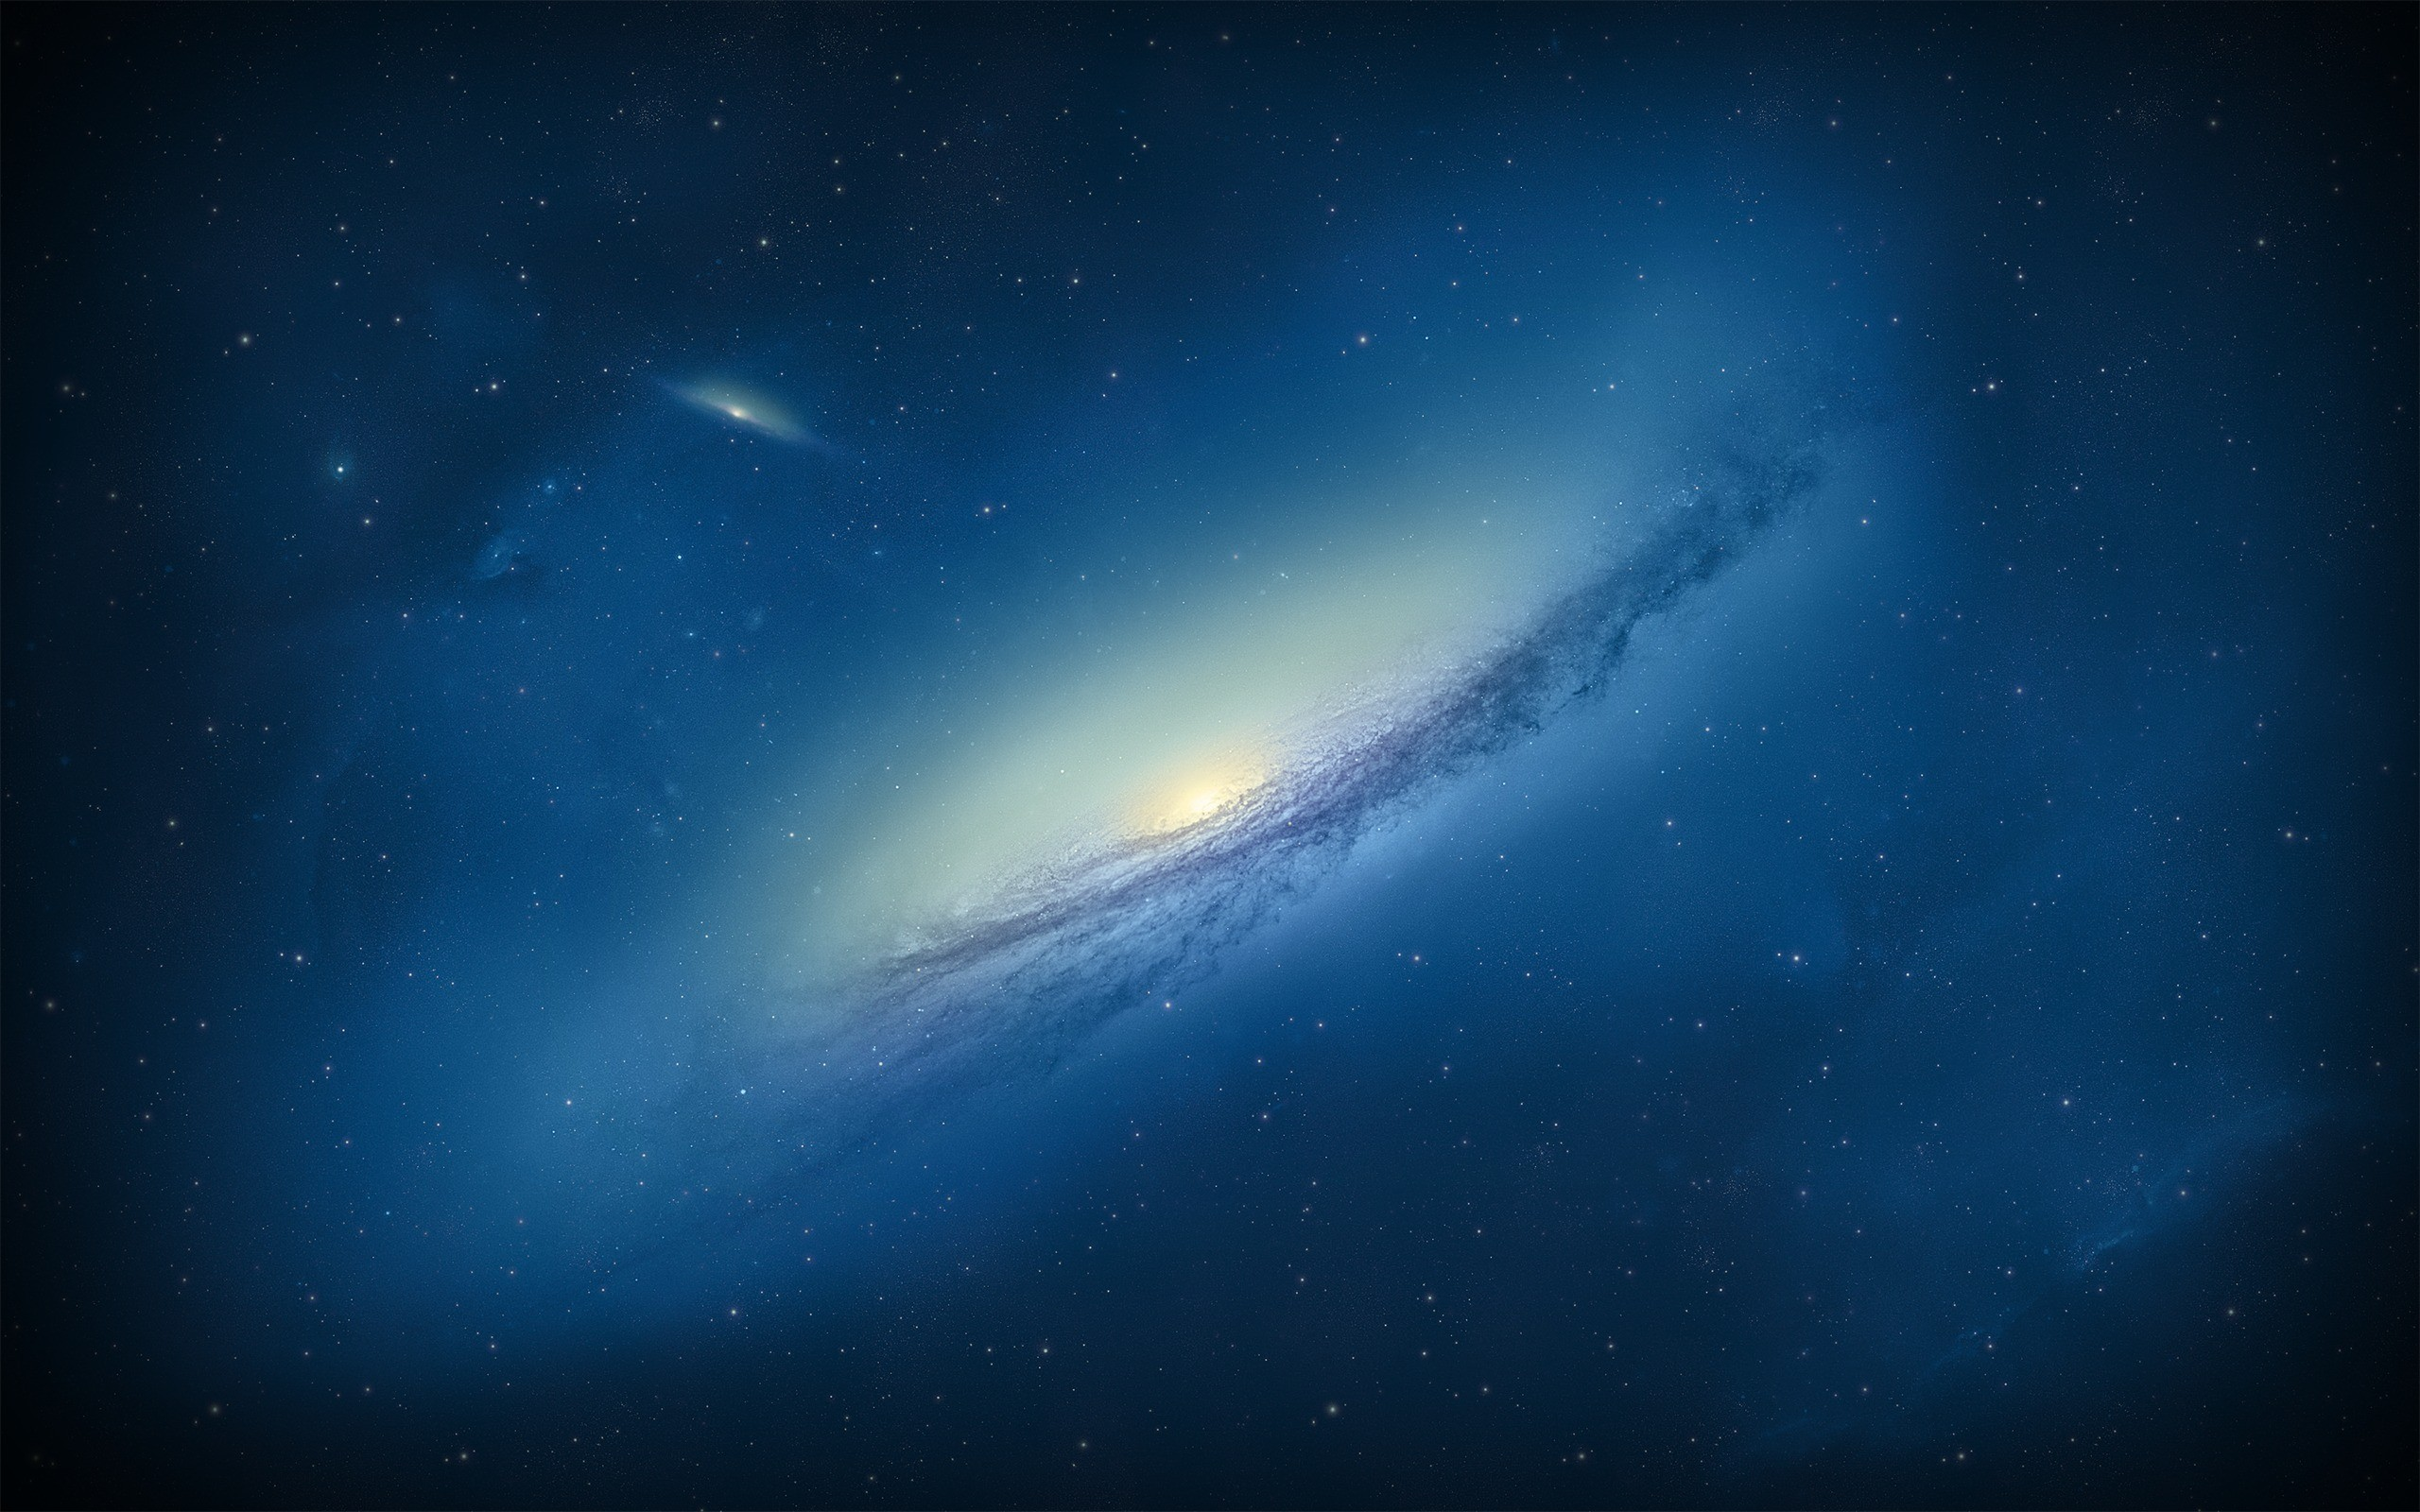 Blue galaxy wallpaper premium space wallpapers by - Deep blue space wallpaper ...